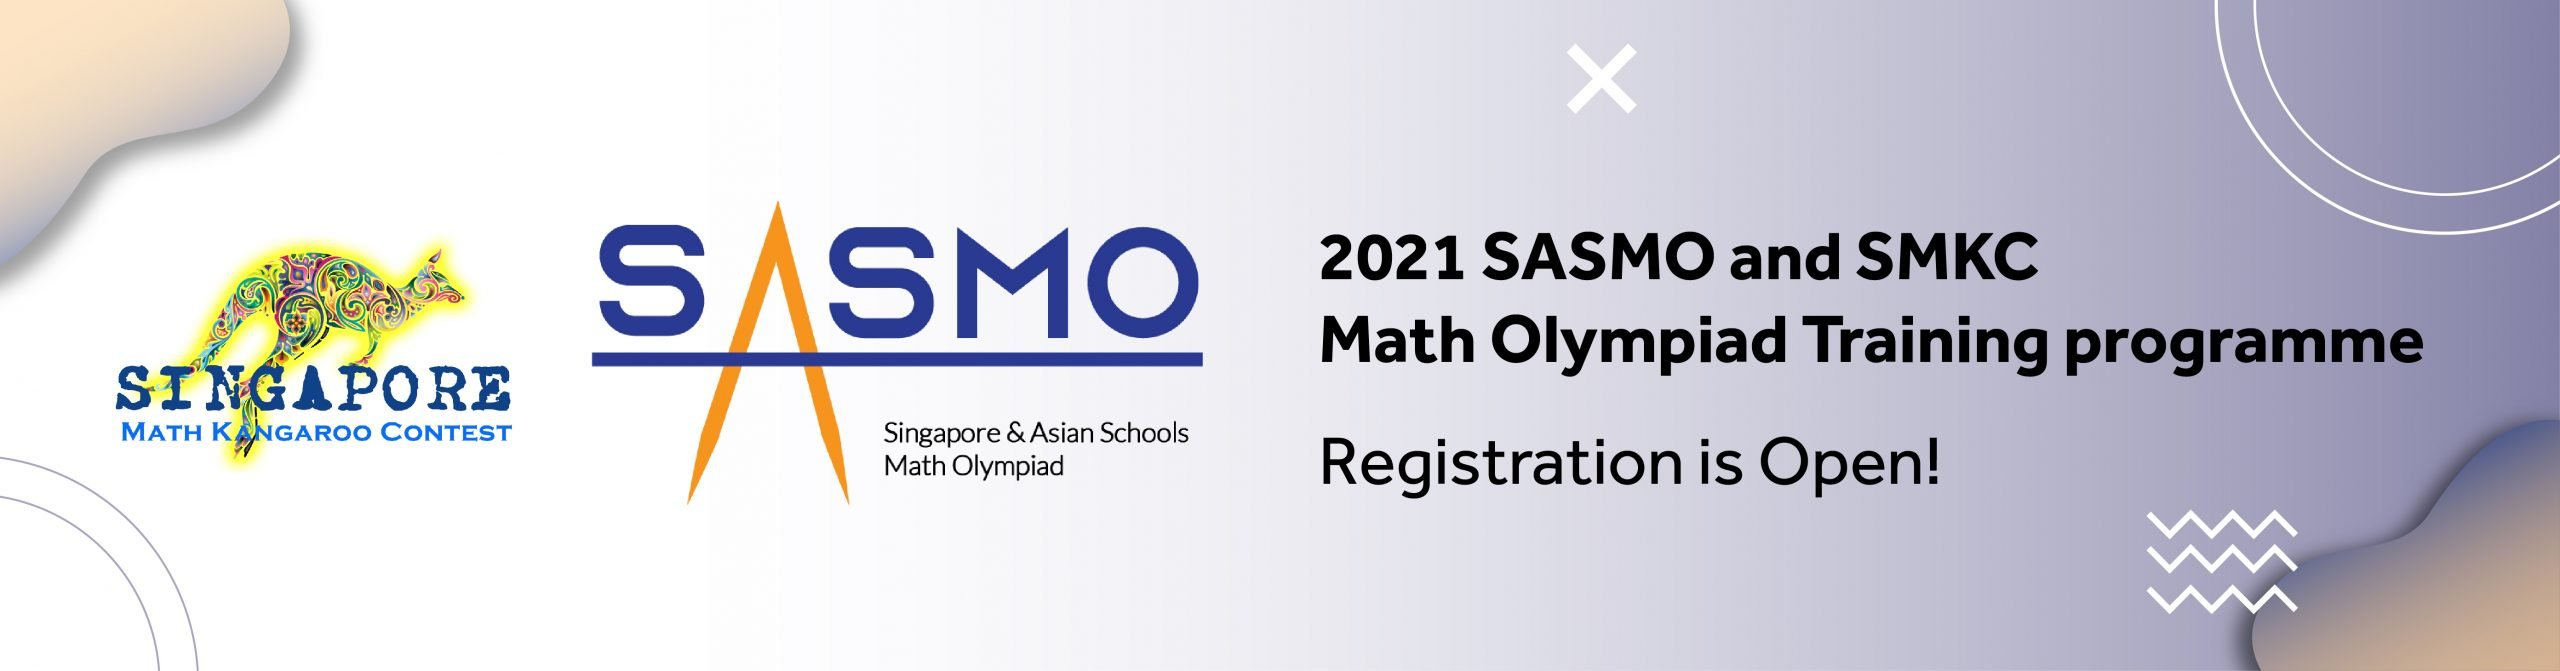 2021 SASMO & SMKC Training